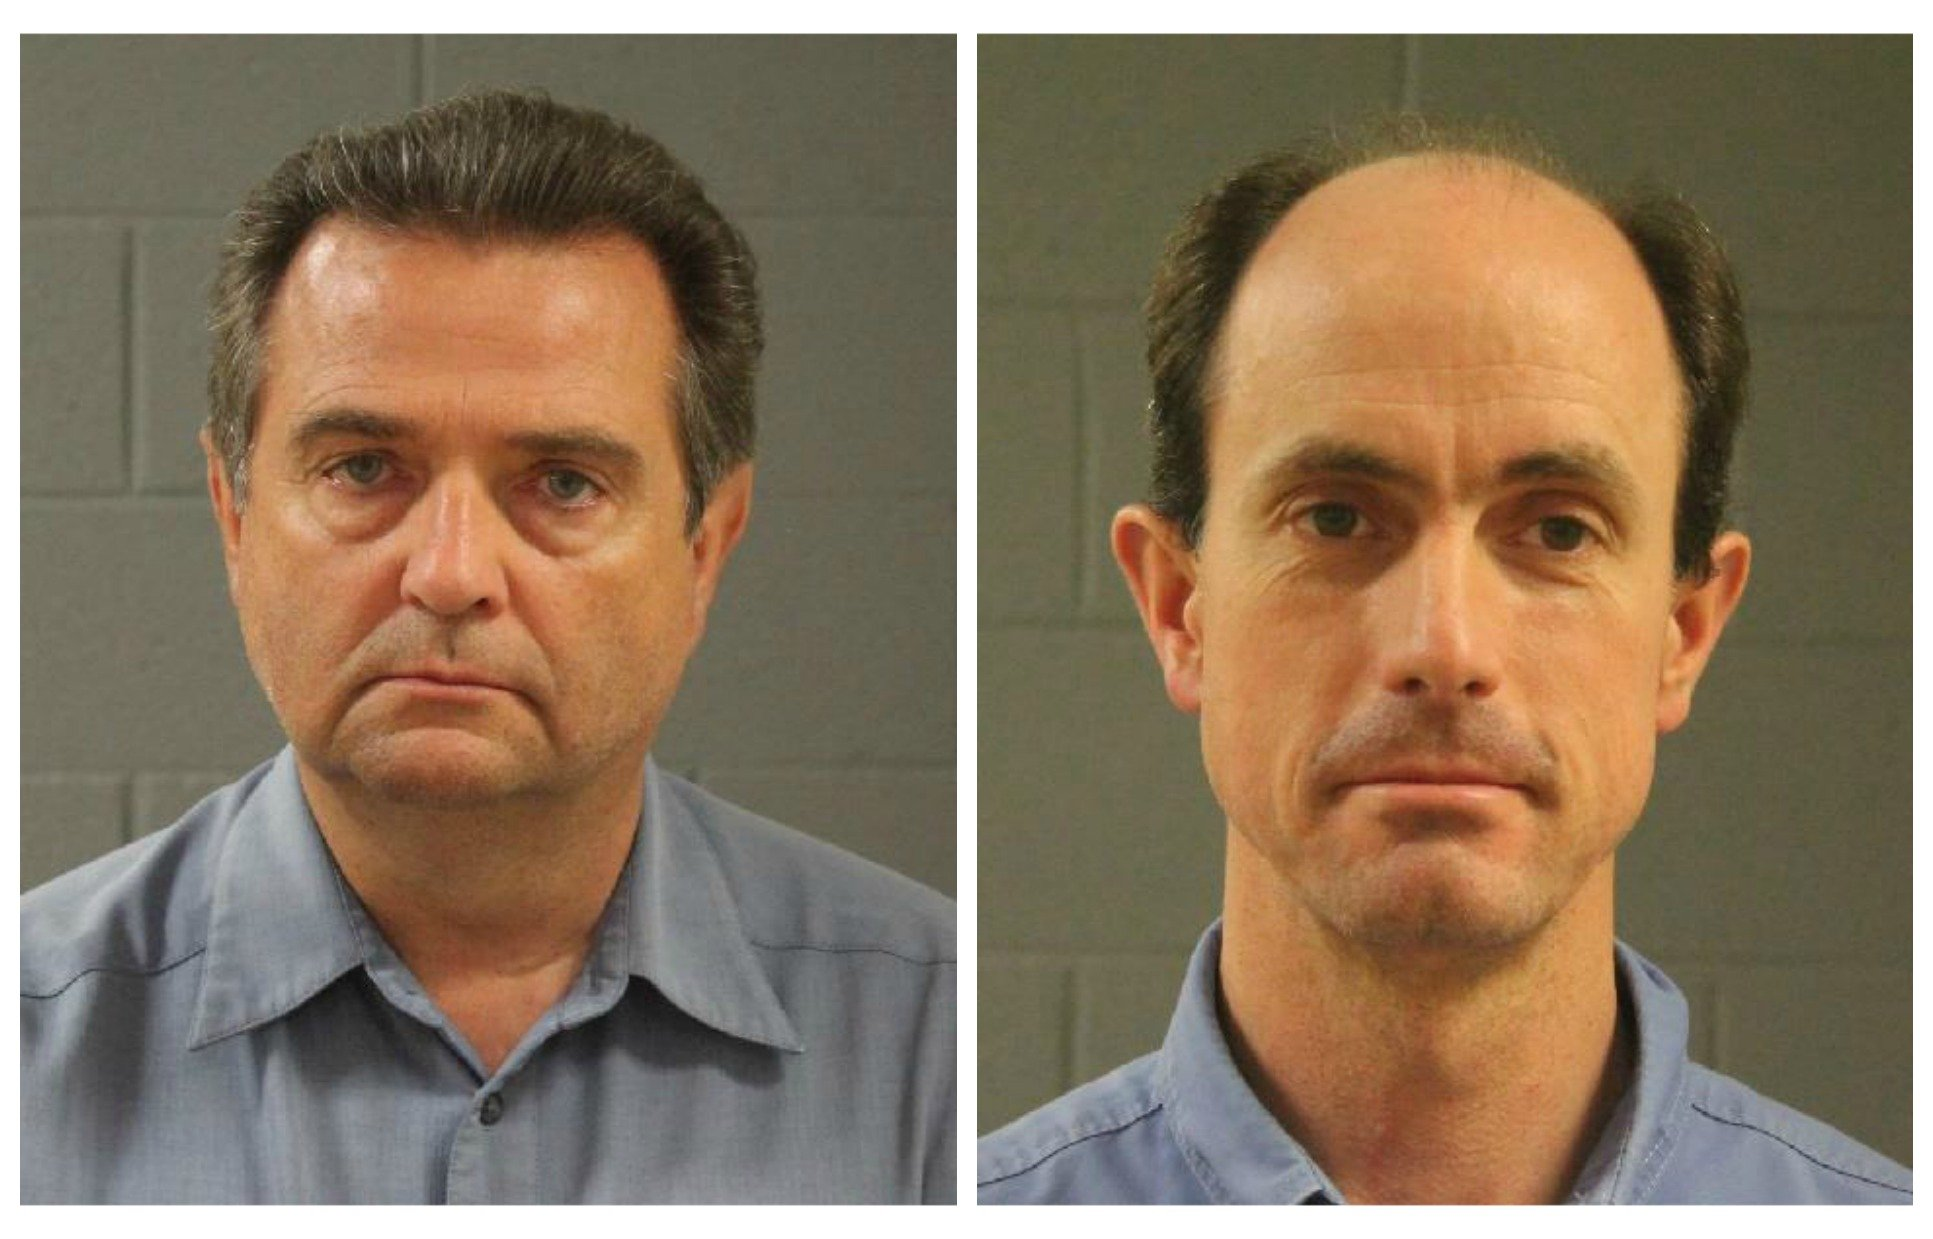 John Wayman and Seth Jeffs, leaders in the Fundamentalist Church of Jesus Christ of Latter-Day Saints have been arrested for allegedly violating the terms of their pretrial release from jail in a multimillion dollar food stamp fraud and money laundering case, Washington County, Utah, August 2016 | Photos courtesy of the Washington County Sheriff's Office, St. George News